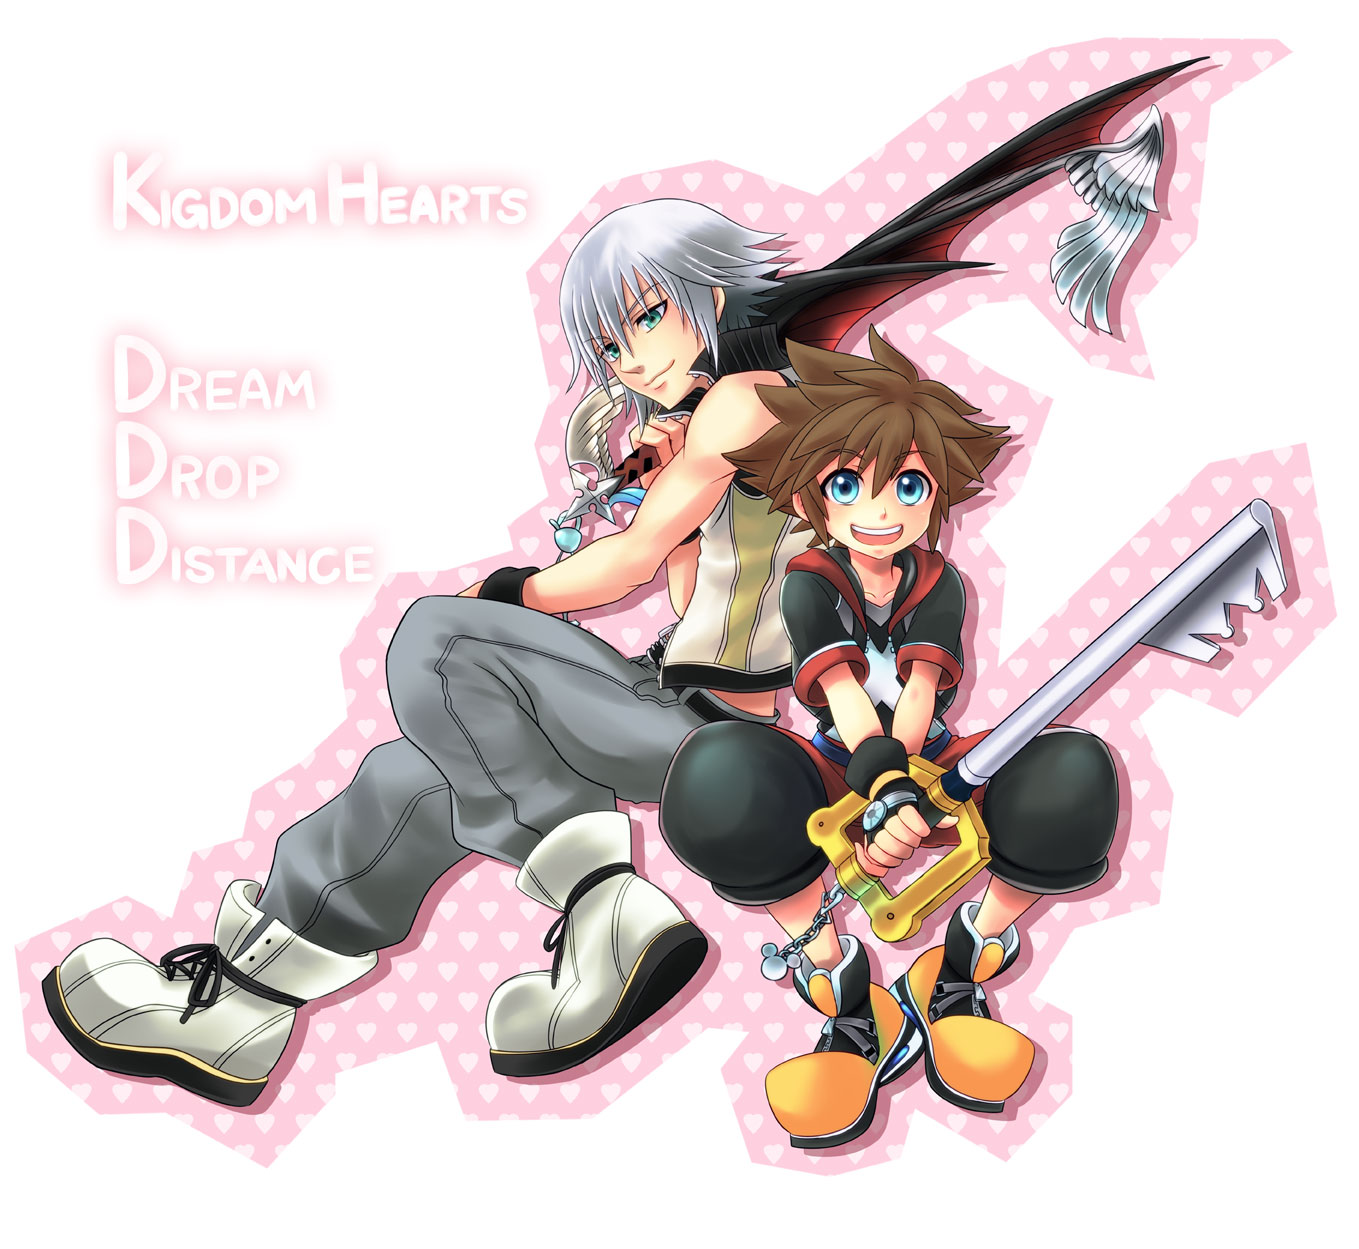 Kingdom Hearts 3D  Dream Drop Distance  1050226 - ZerochanKingdom Hearts Dream Drop Distance Riku Keyblades